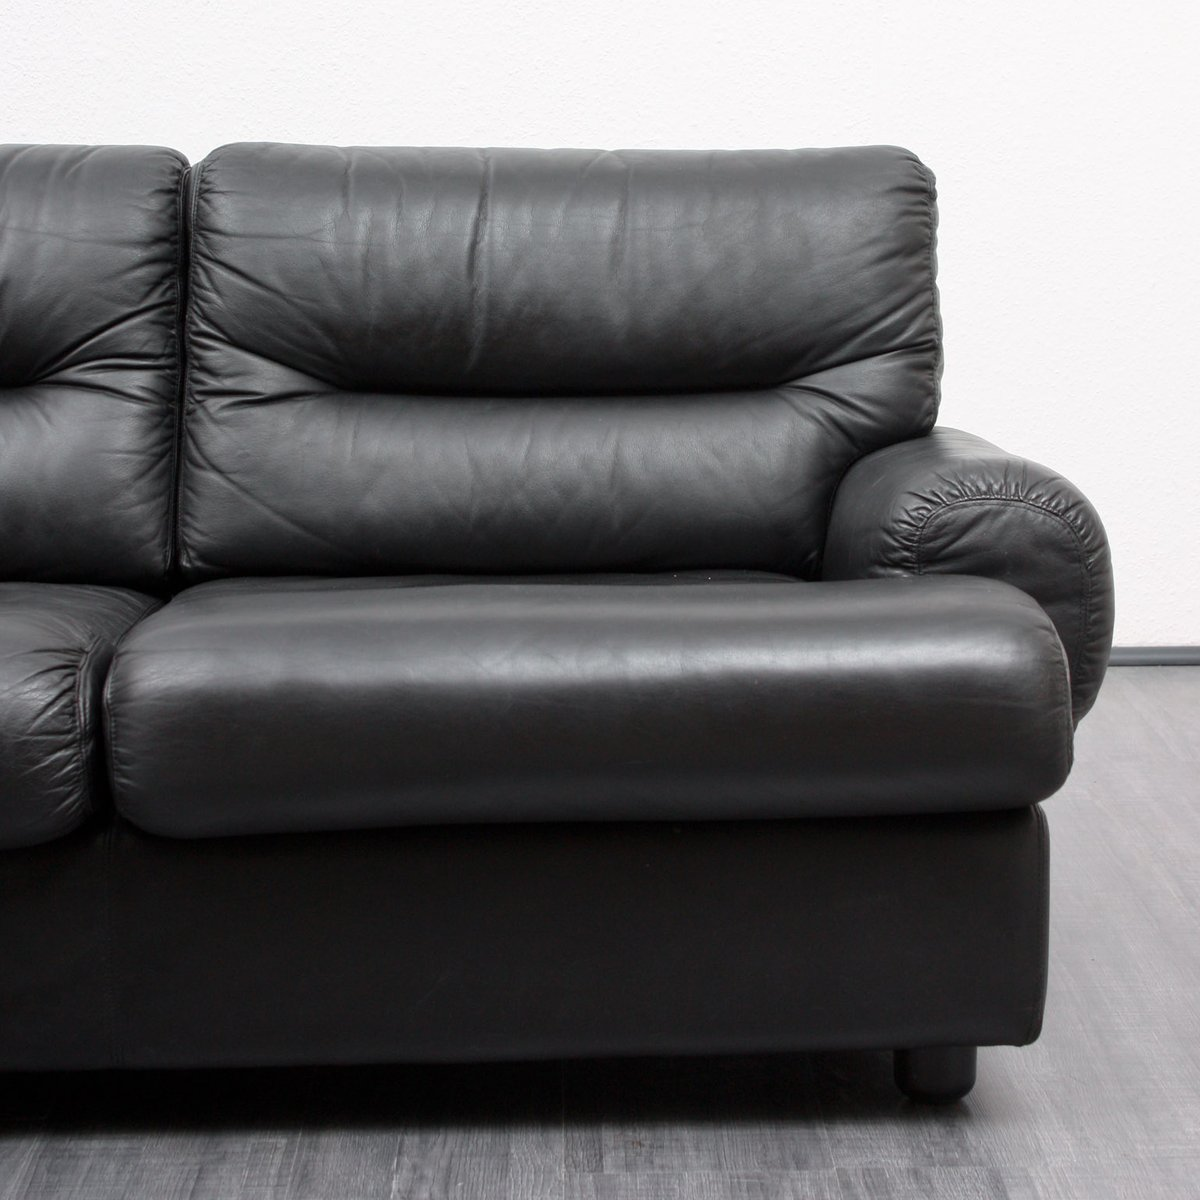 Vintage black leather lounge sofa 1970s for sale at pamono for Sofa lounge